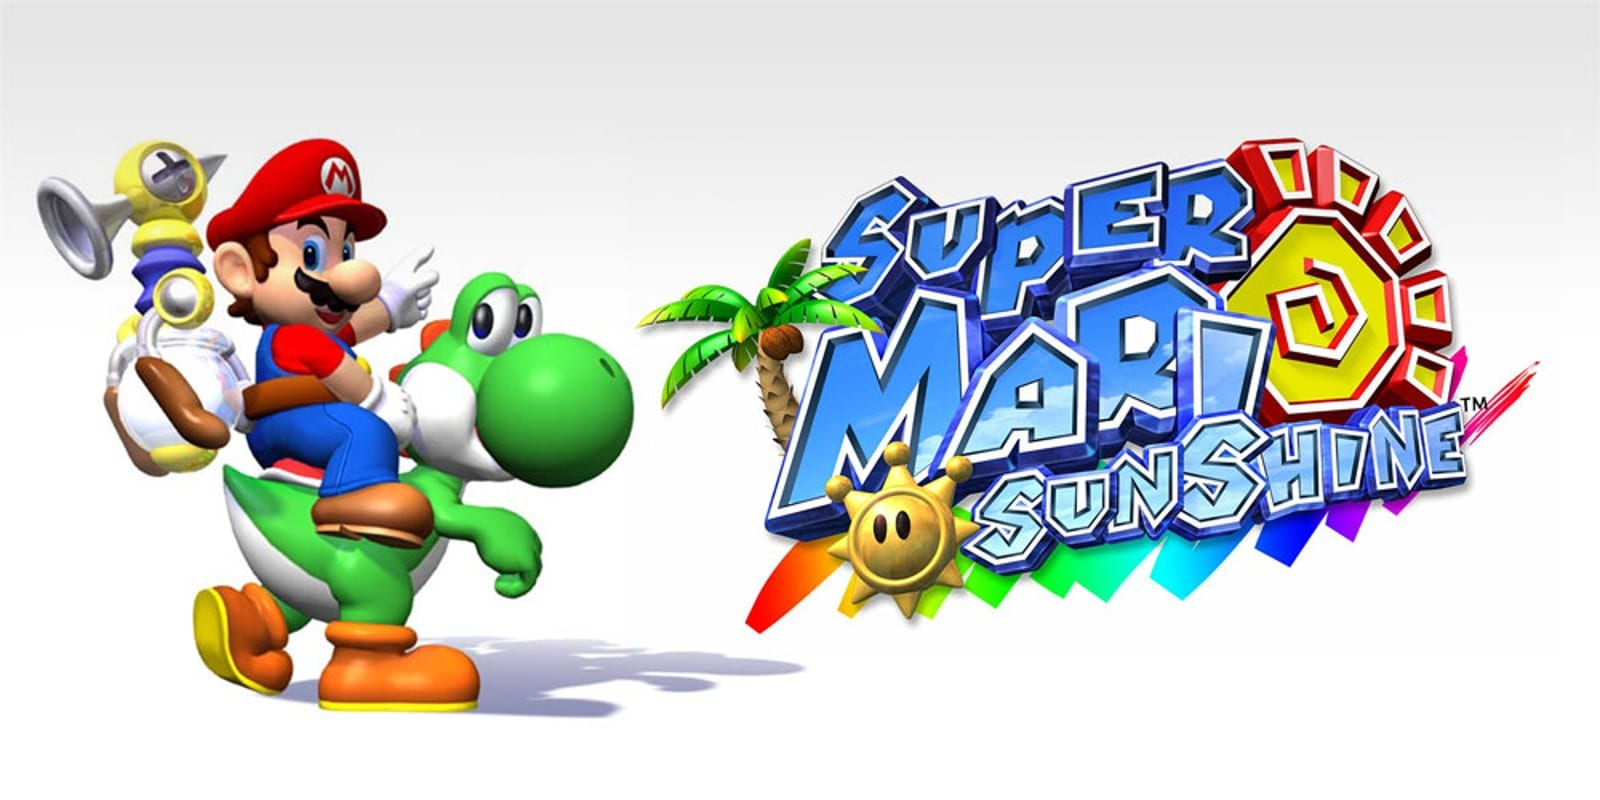 Mario rides Yoshi, pointing into the air. The Super Mario Sunshine logo sits to their right.